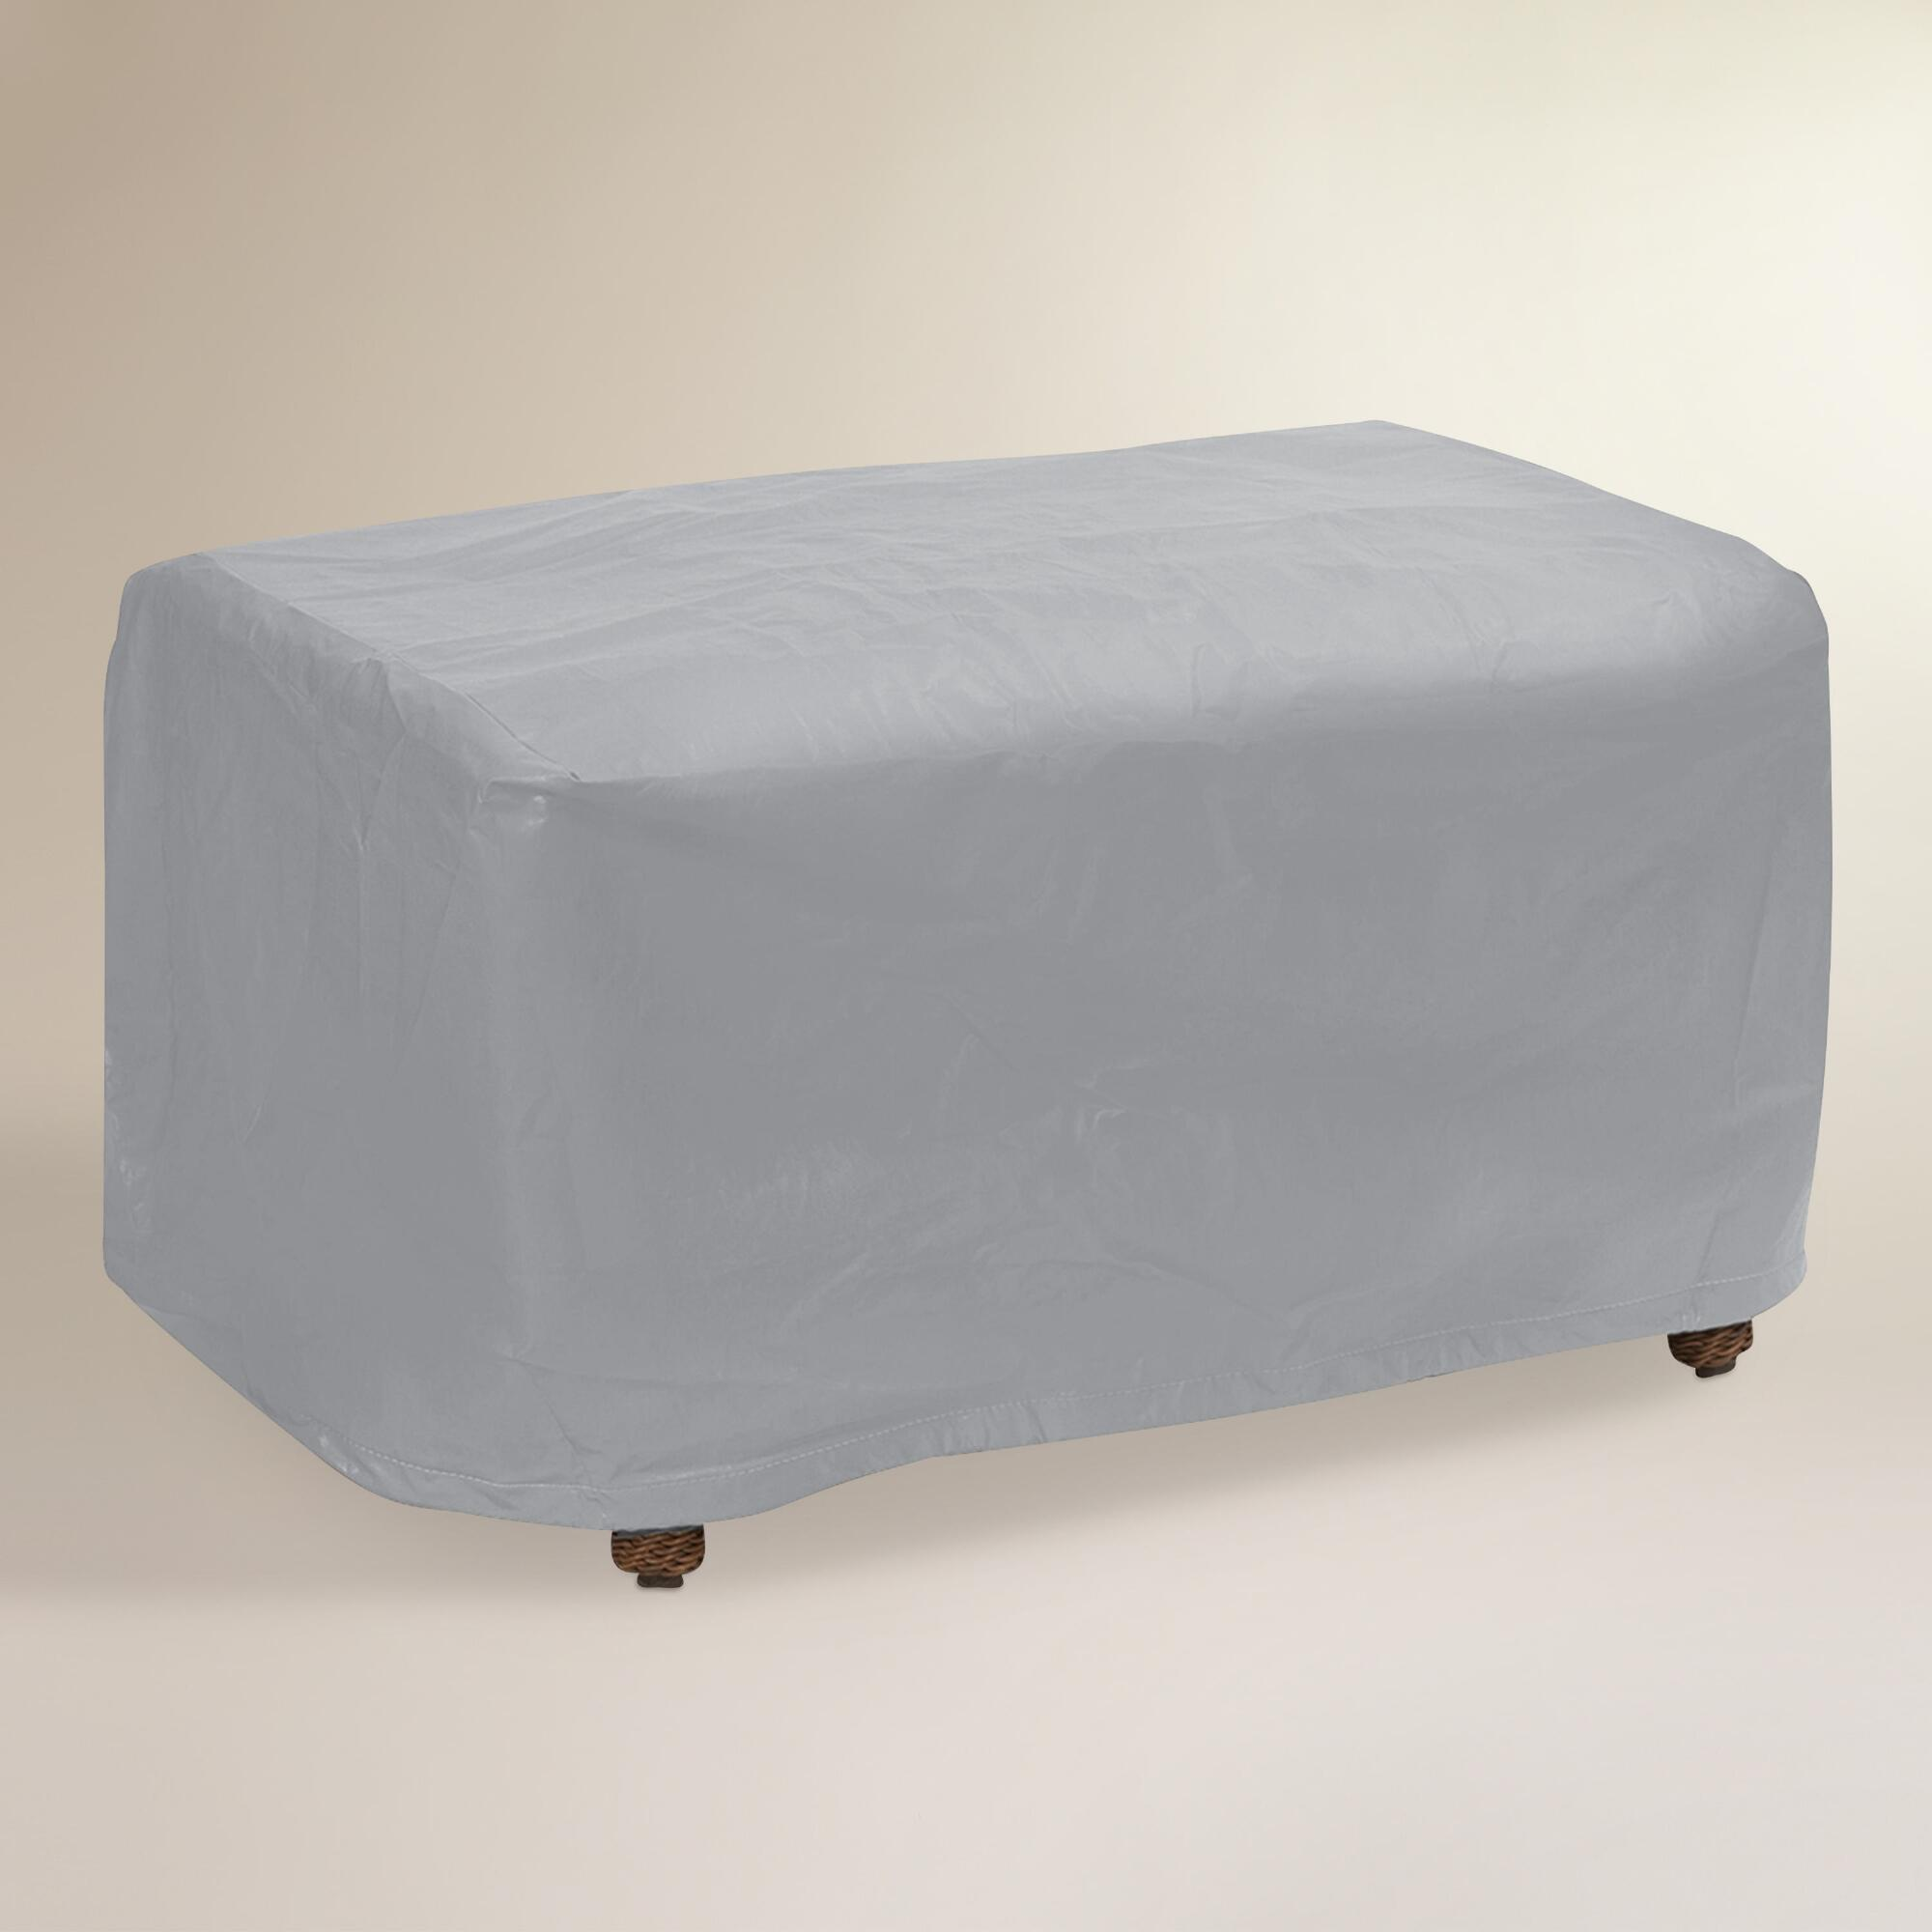 Extra Large Outdoor Patio Coffee Table Cover - Tan by World Market Tan